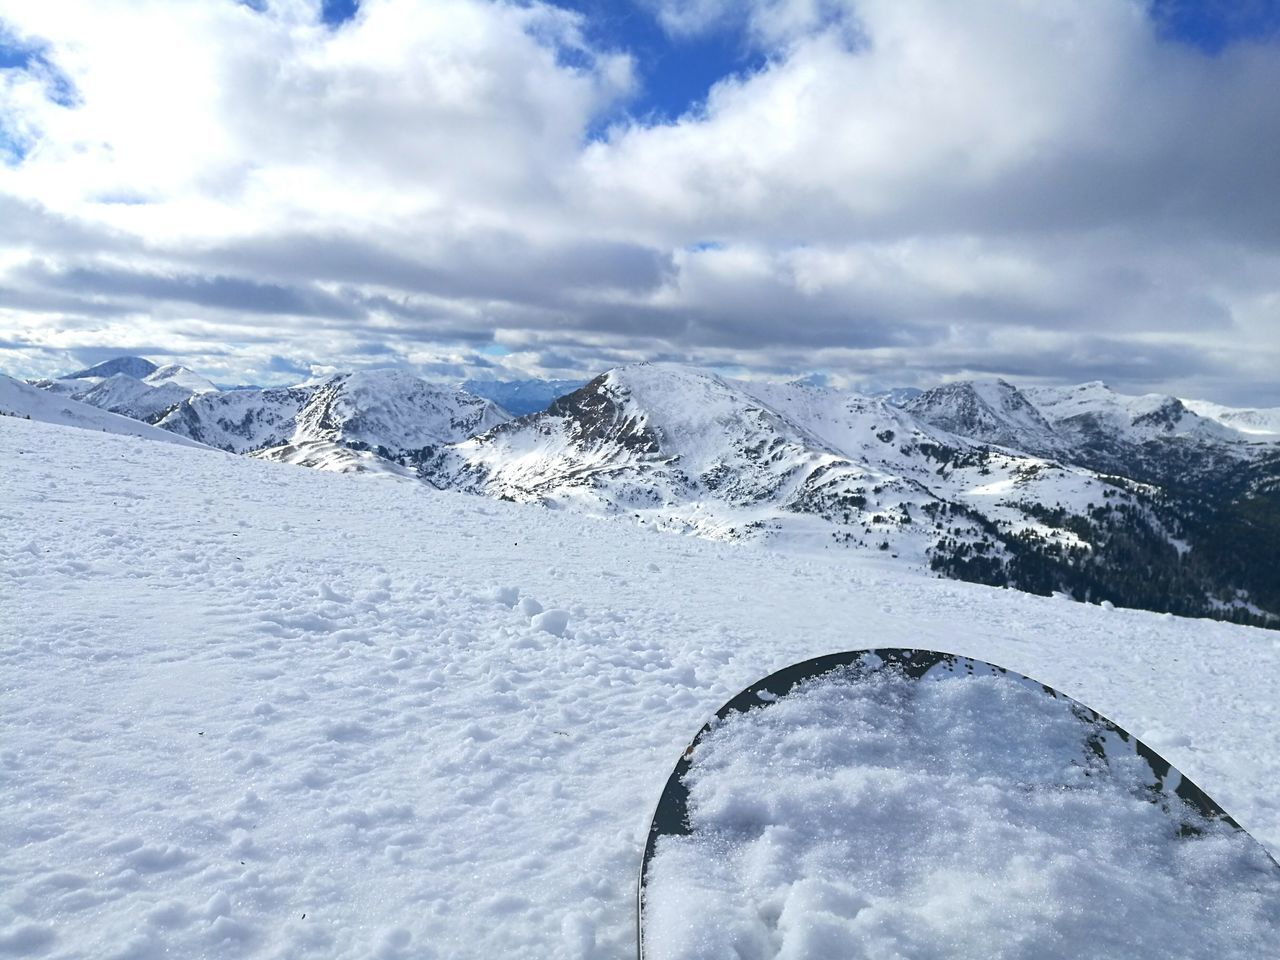 Snow Winter Mountain Landscape Cloud - Sky Outdoors Scenics Sky Nature Beauty In Nature Mountain Range Cold Temperature Day Snowboarding Snow ❄ Snowy Mountains Snowboard Snowboard Gear Skiing Skifahren Ice Cold